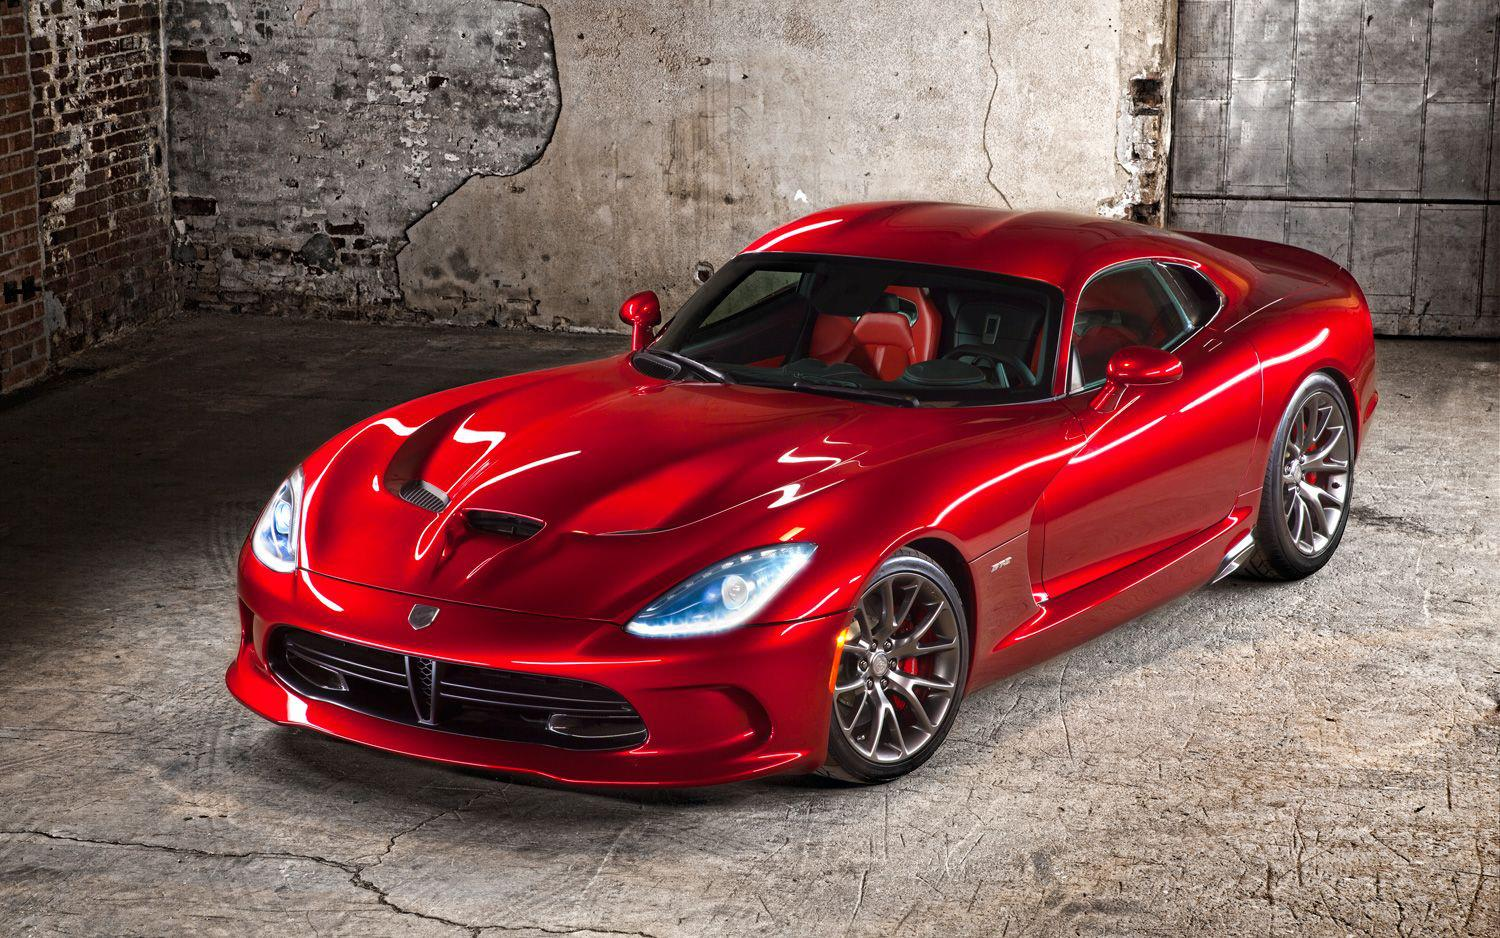 Chrysler viper vs dodge viper #1